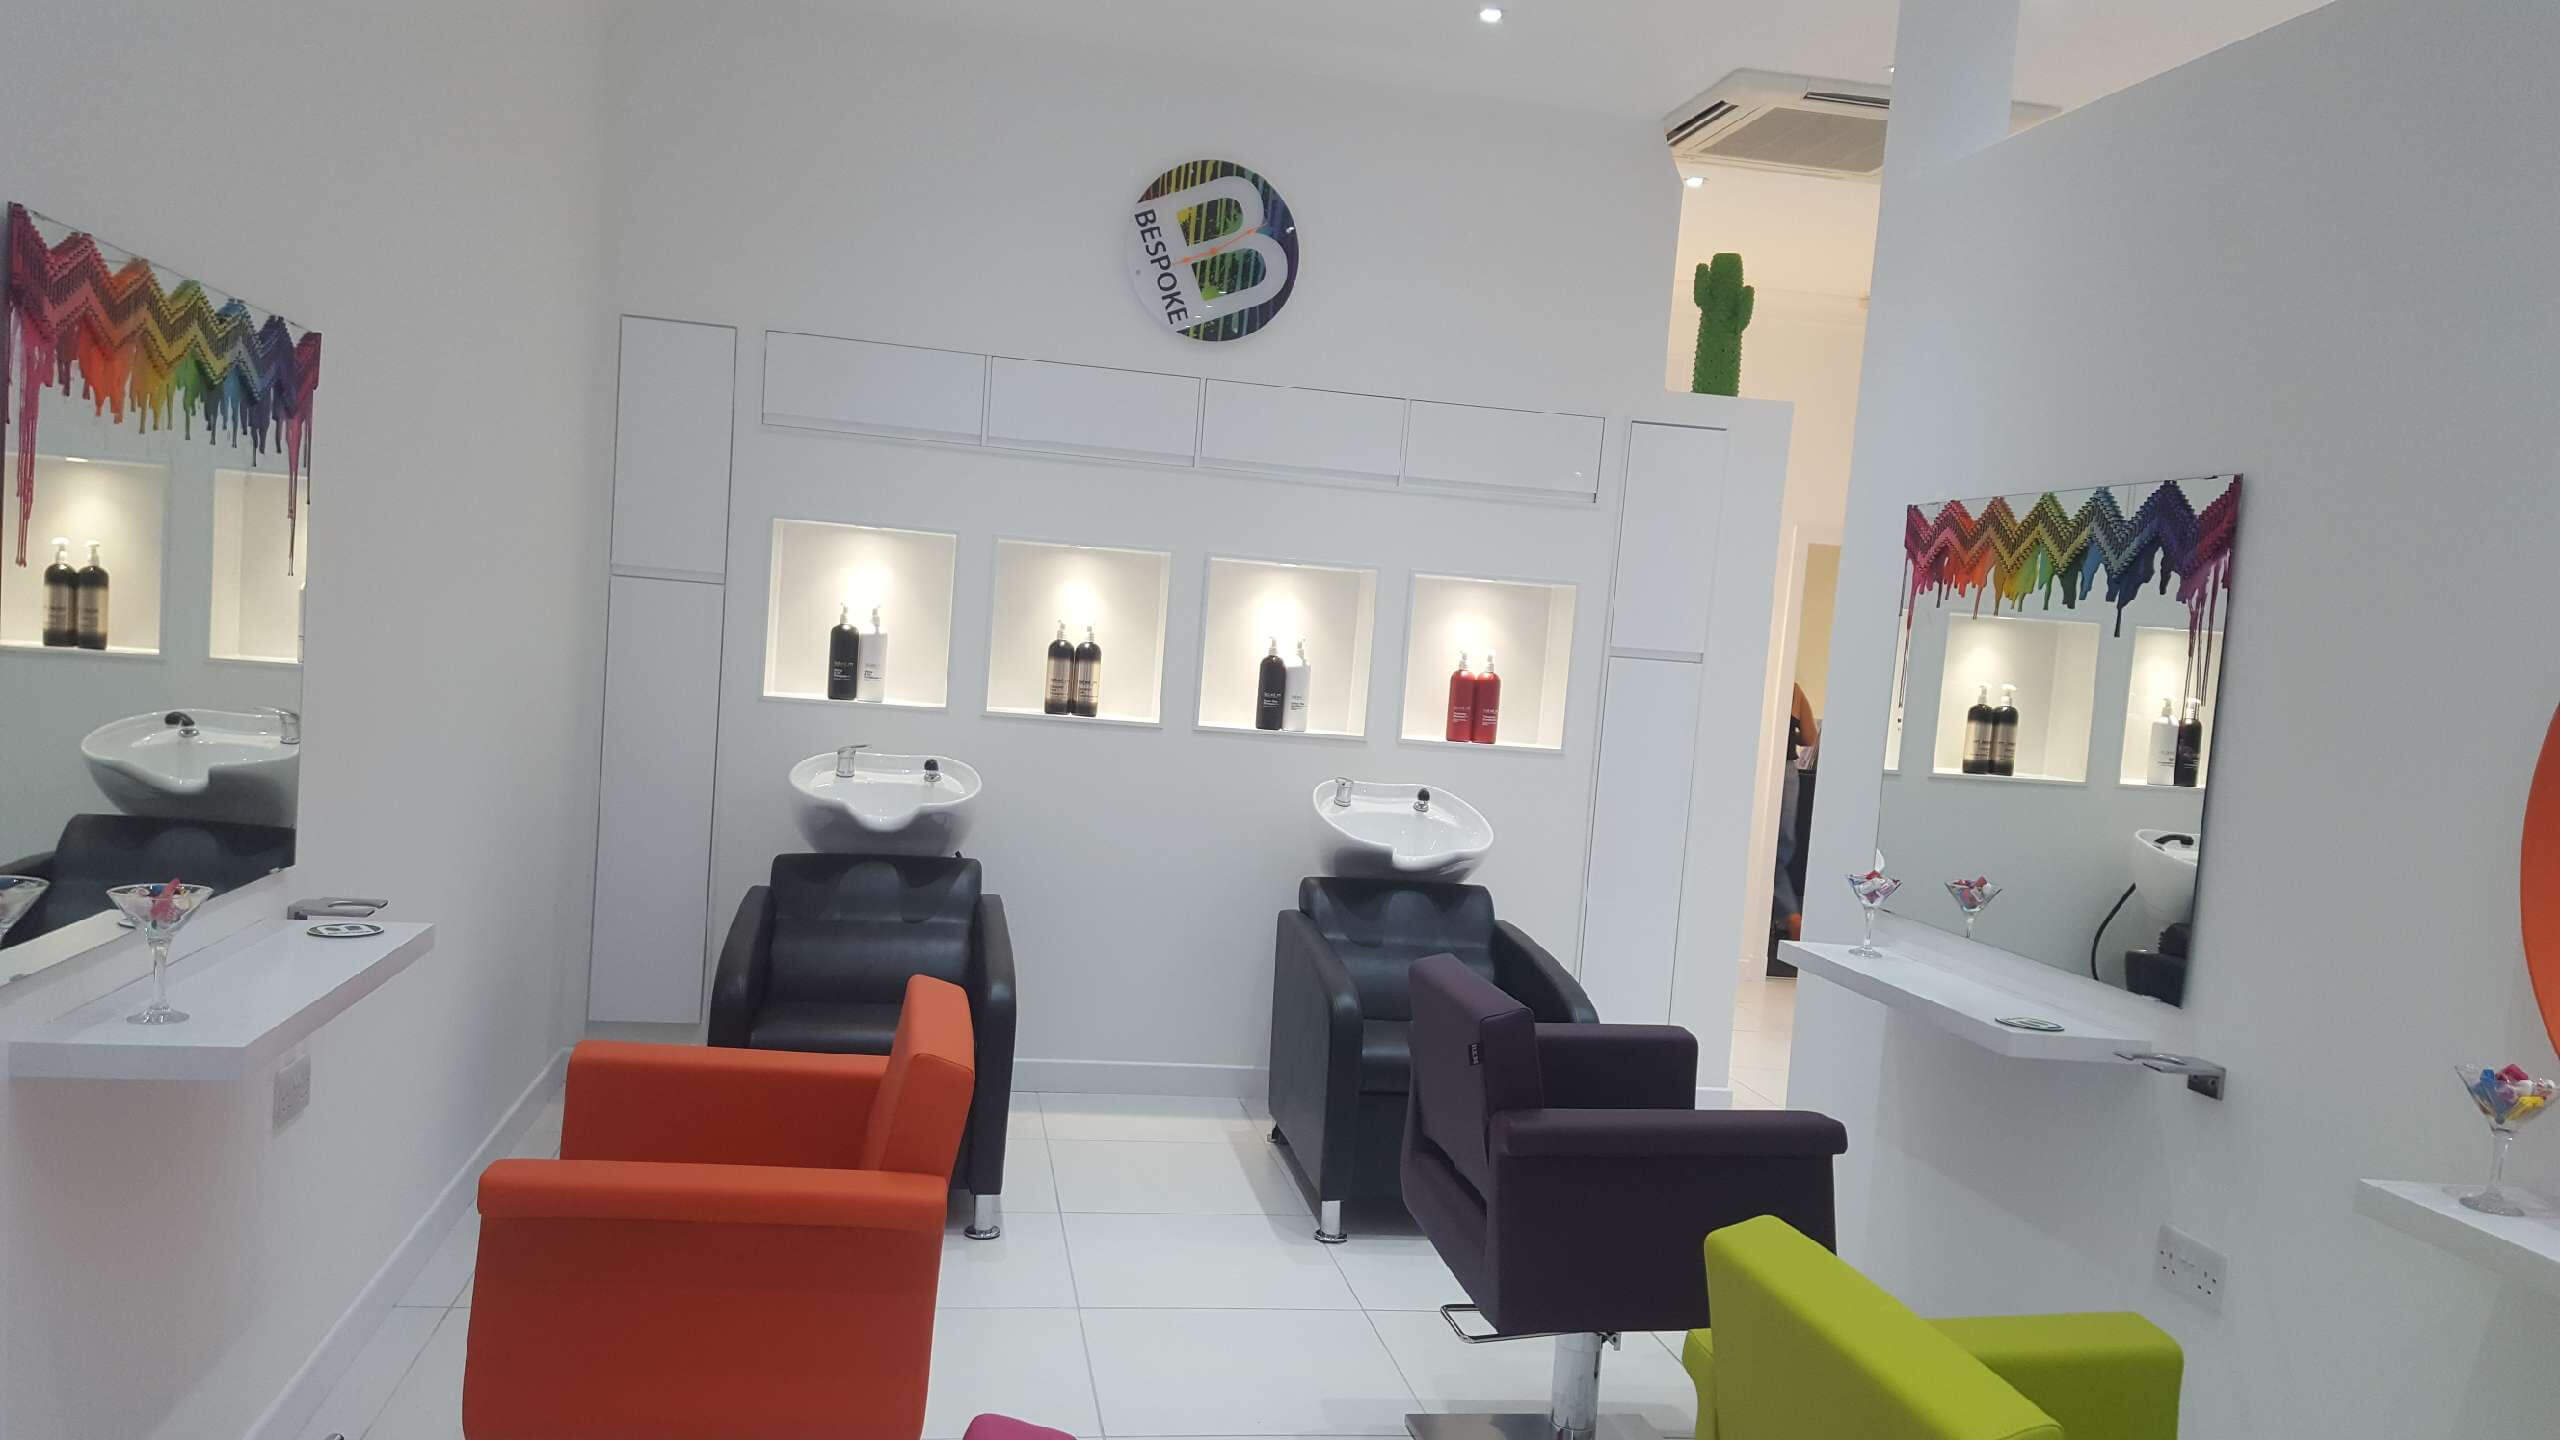 Commercial Painitng at Bespoke Hairdressers in Dunfermline